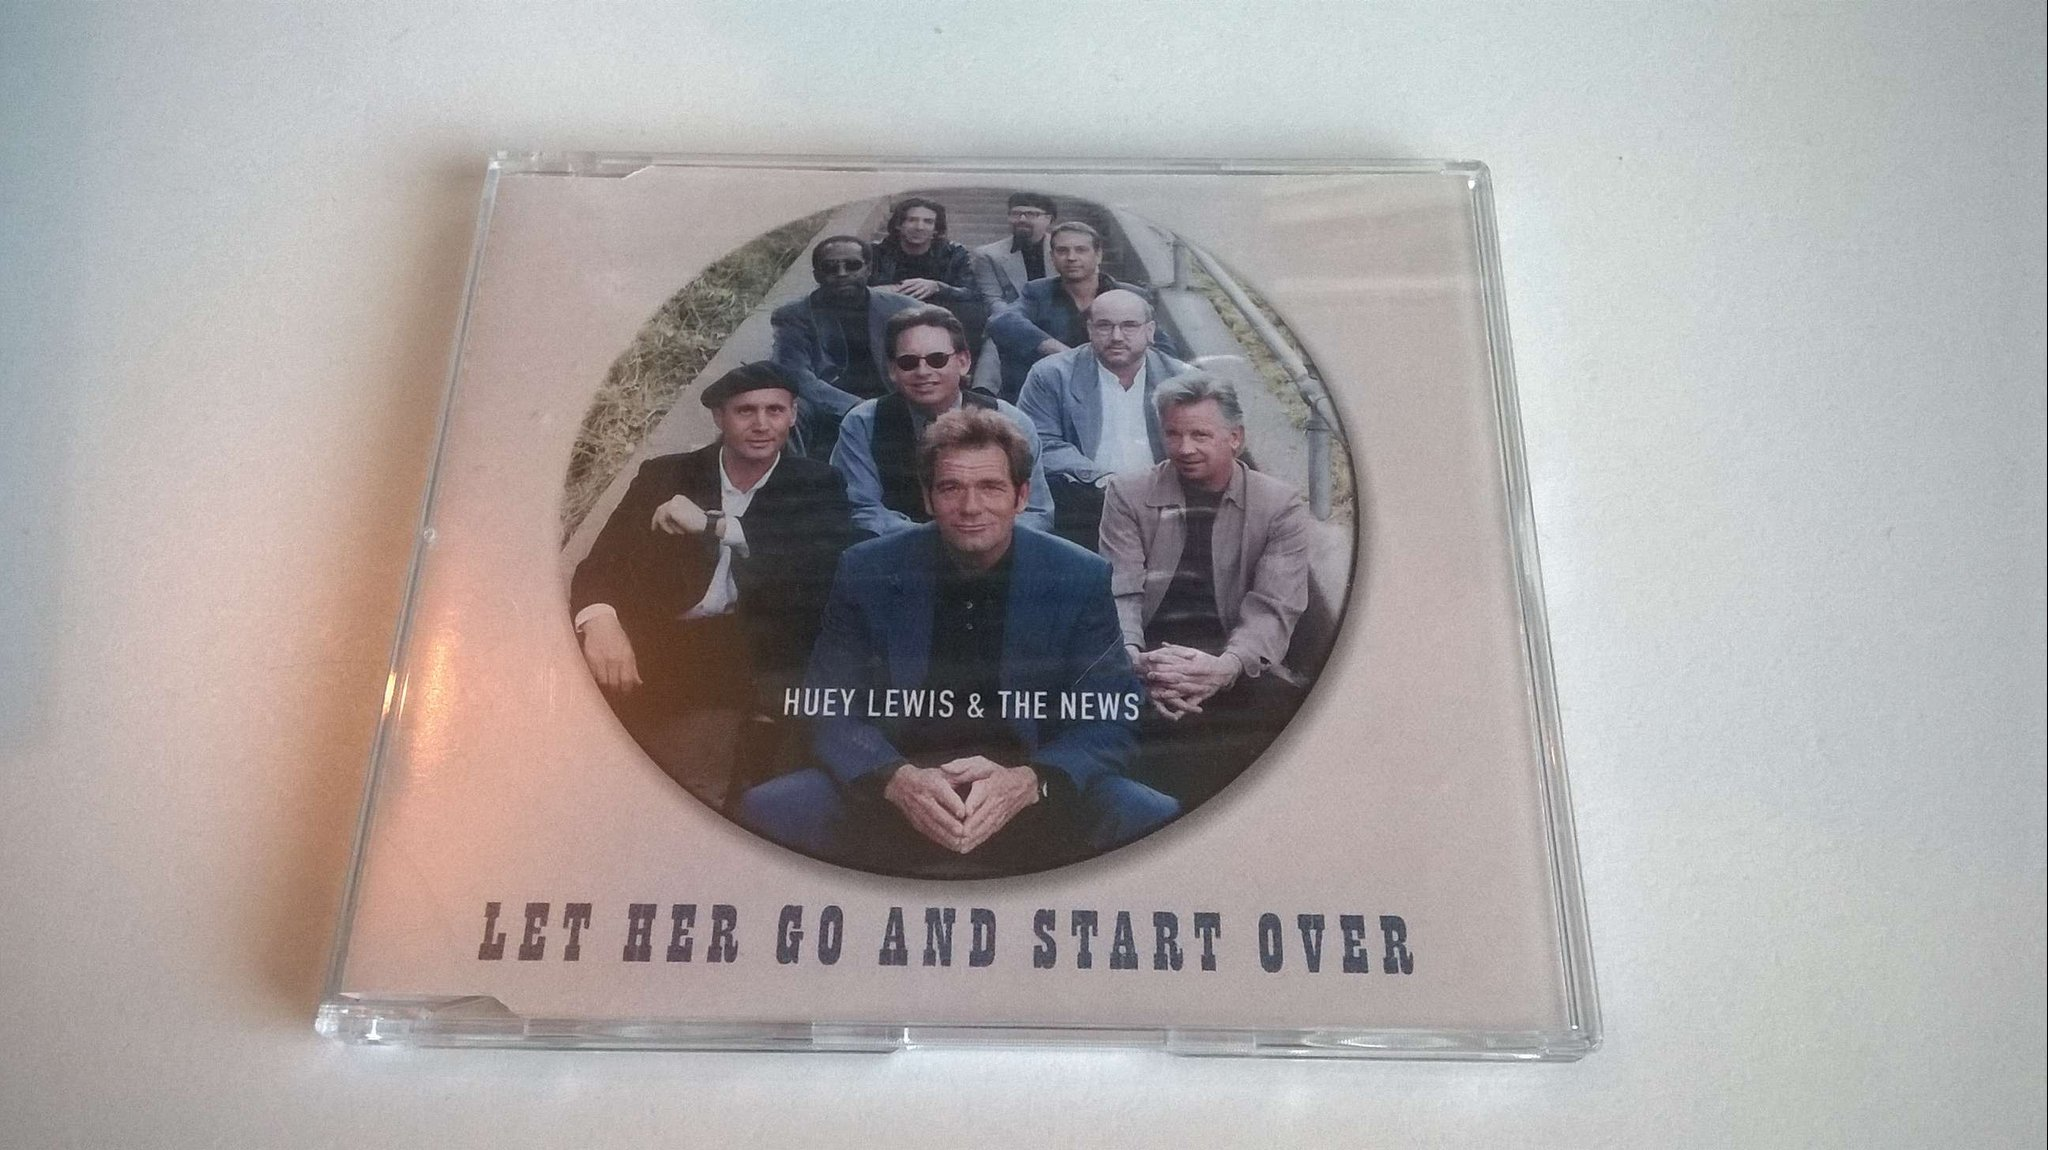 Huey Lewis & The New - Let Her Go and Start Over, CD